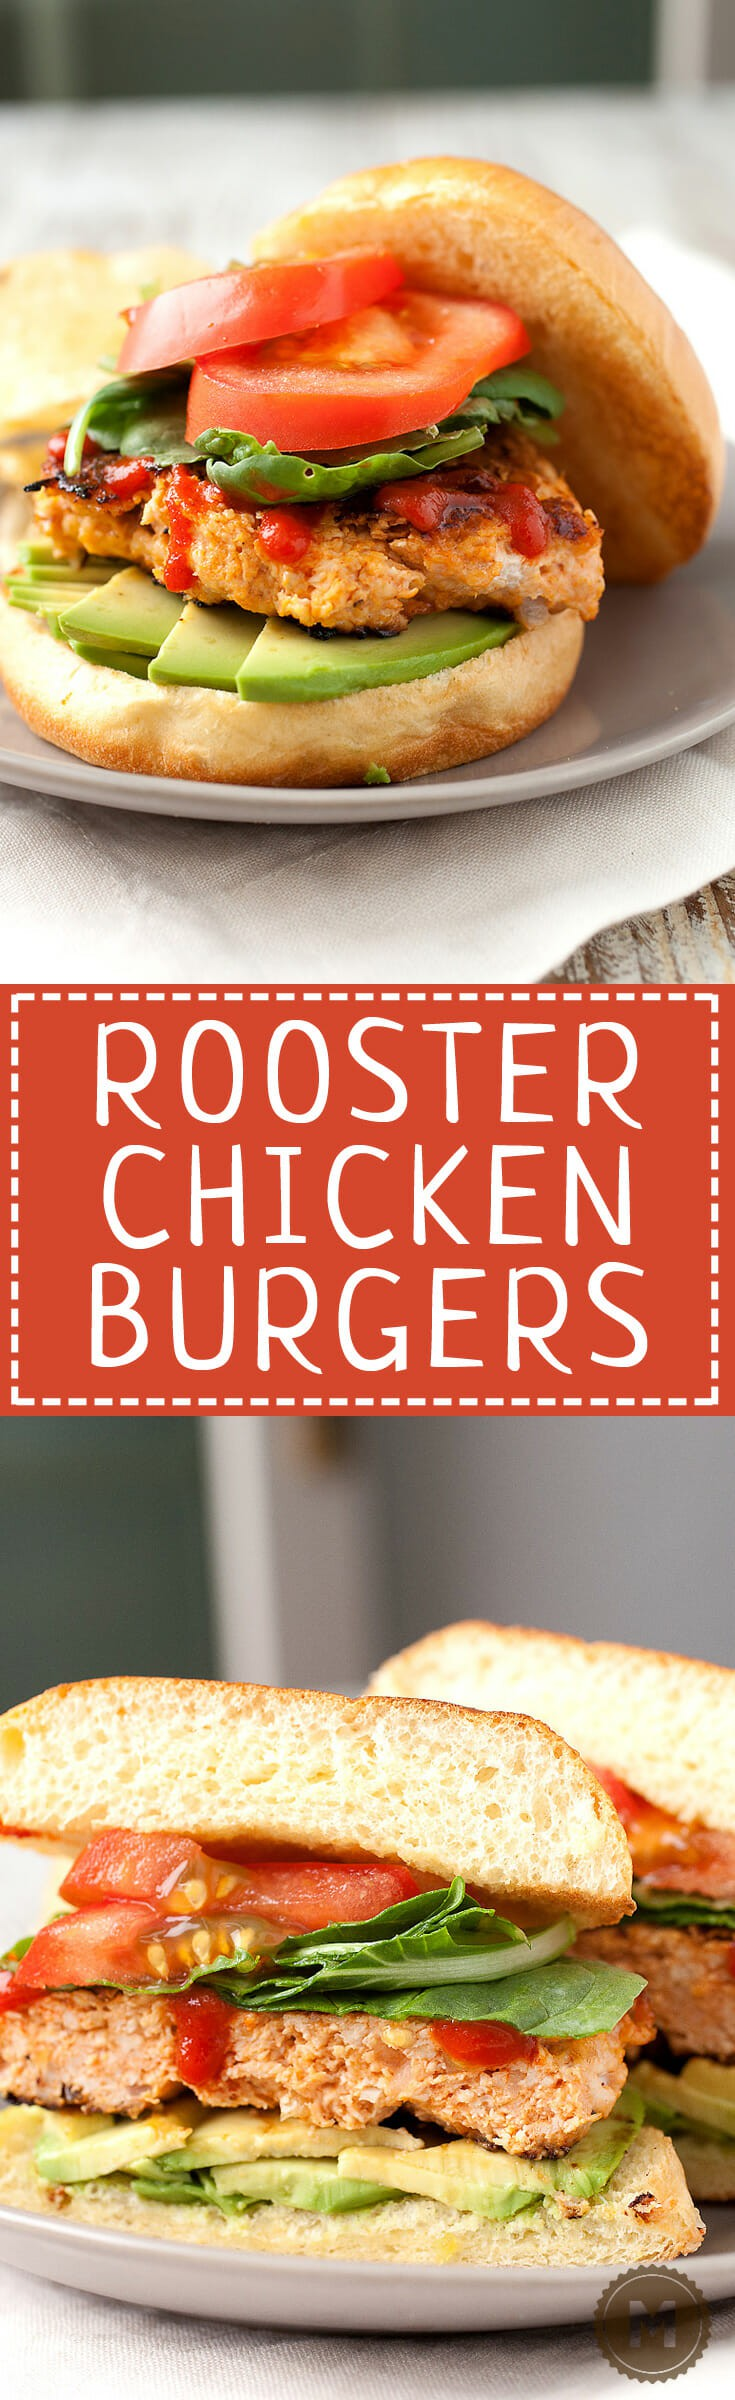 Sriracha Chicken Burgers: I call these my rooster chicken burgers thanks to rooster (Sriracha) sauce! It's mixed in with the burger and added on top also. This is not your standard bland chicken burger. Spice it up! | macheesmo.com